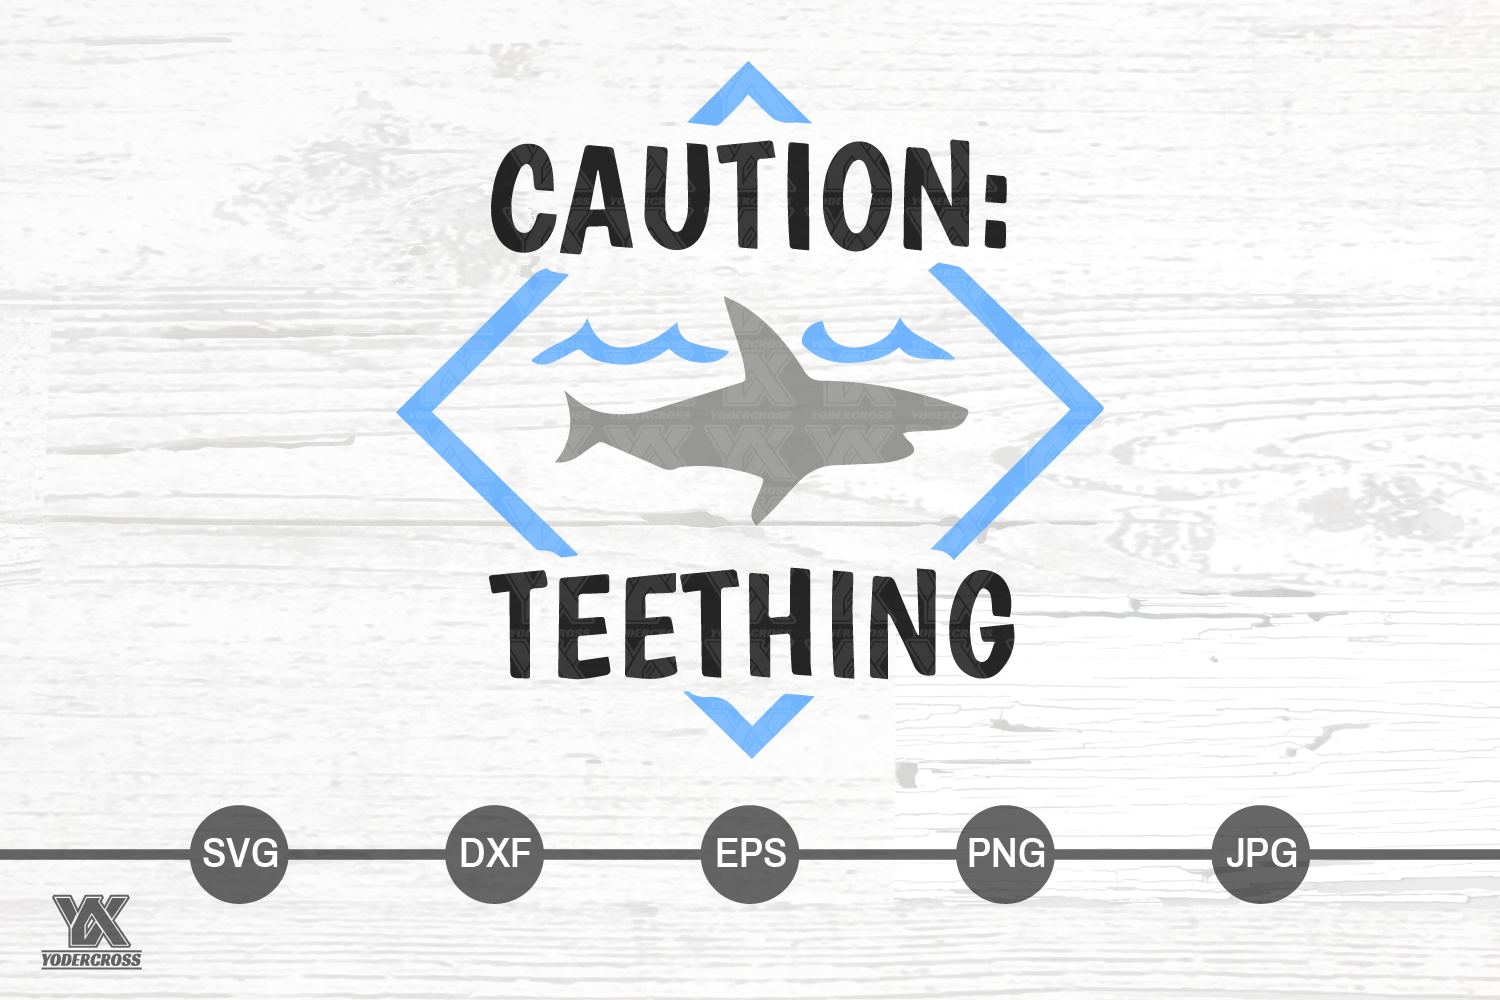 Caution Teething Shark SVG example image 3